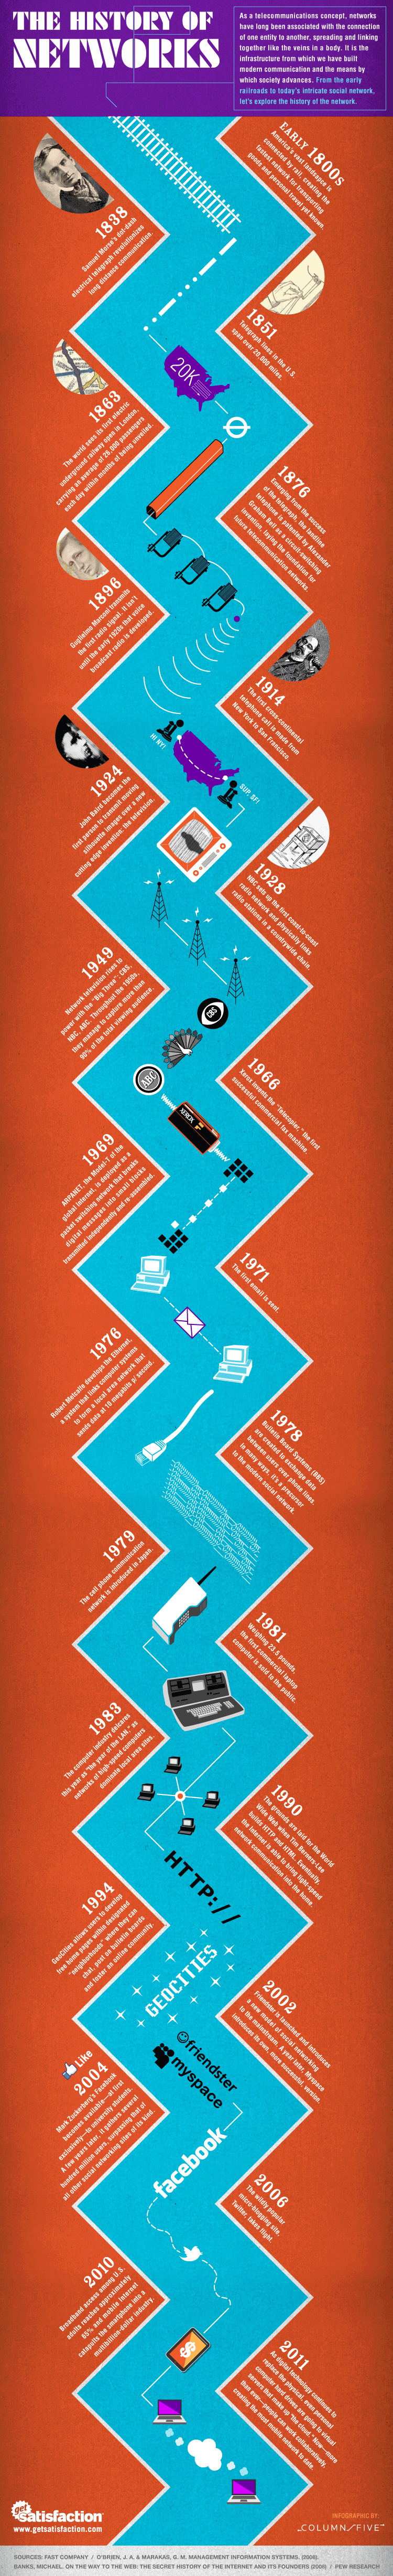 The history of networks